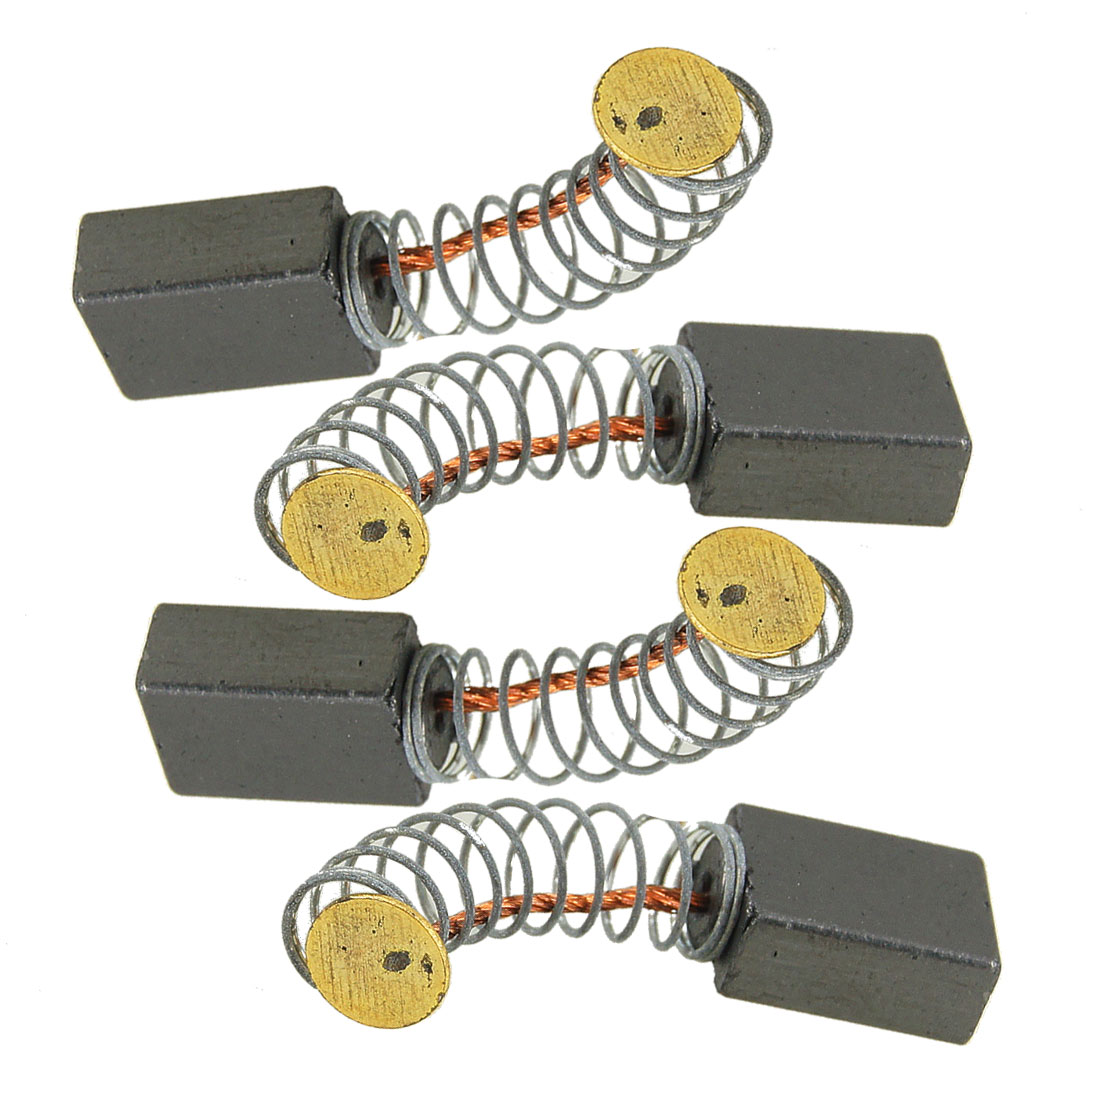 11mm x 8mm x 4.5mm Electric Motor Carbon Brushes 2 Pairs